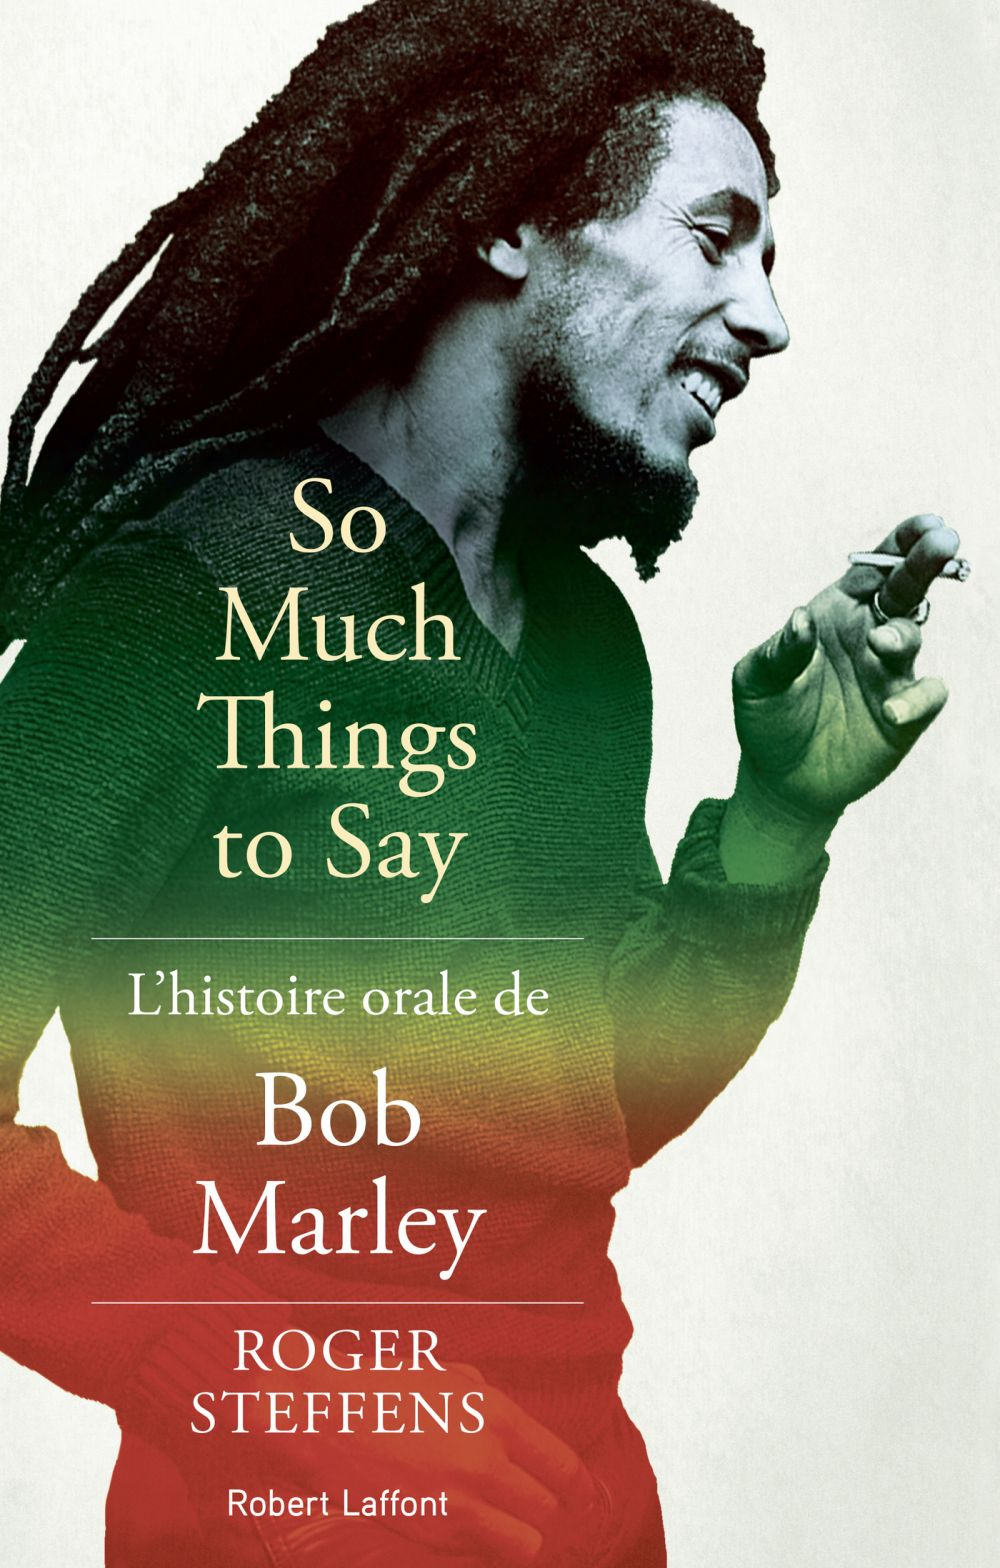 So much things to say: L'histoire orale de Bob Marley | STEFFENS, Roger